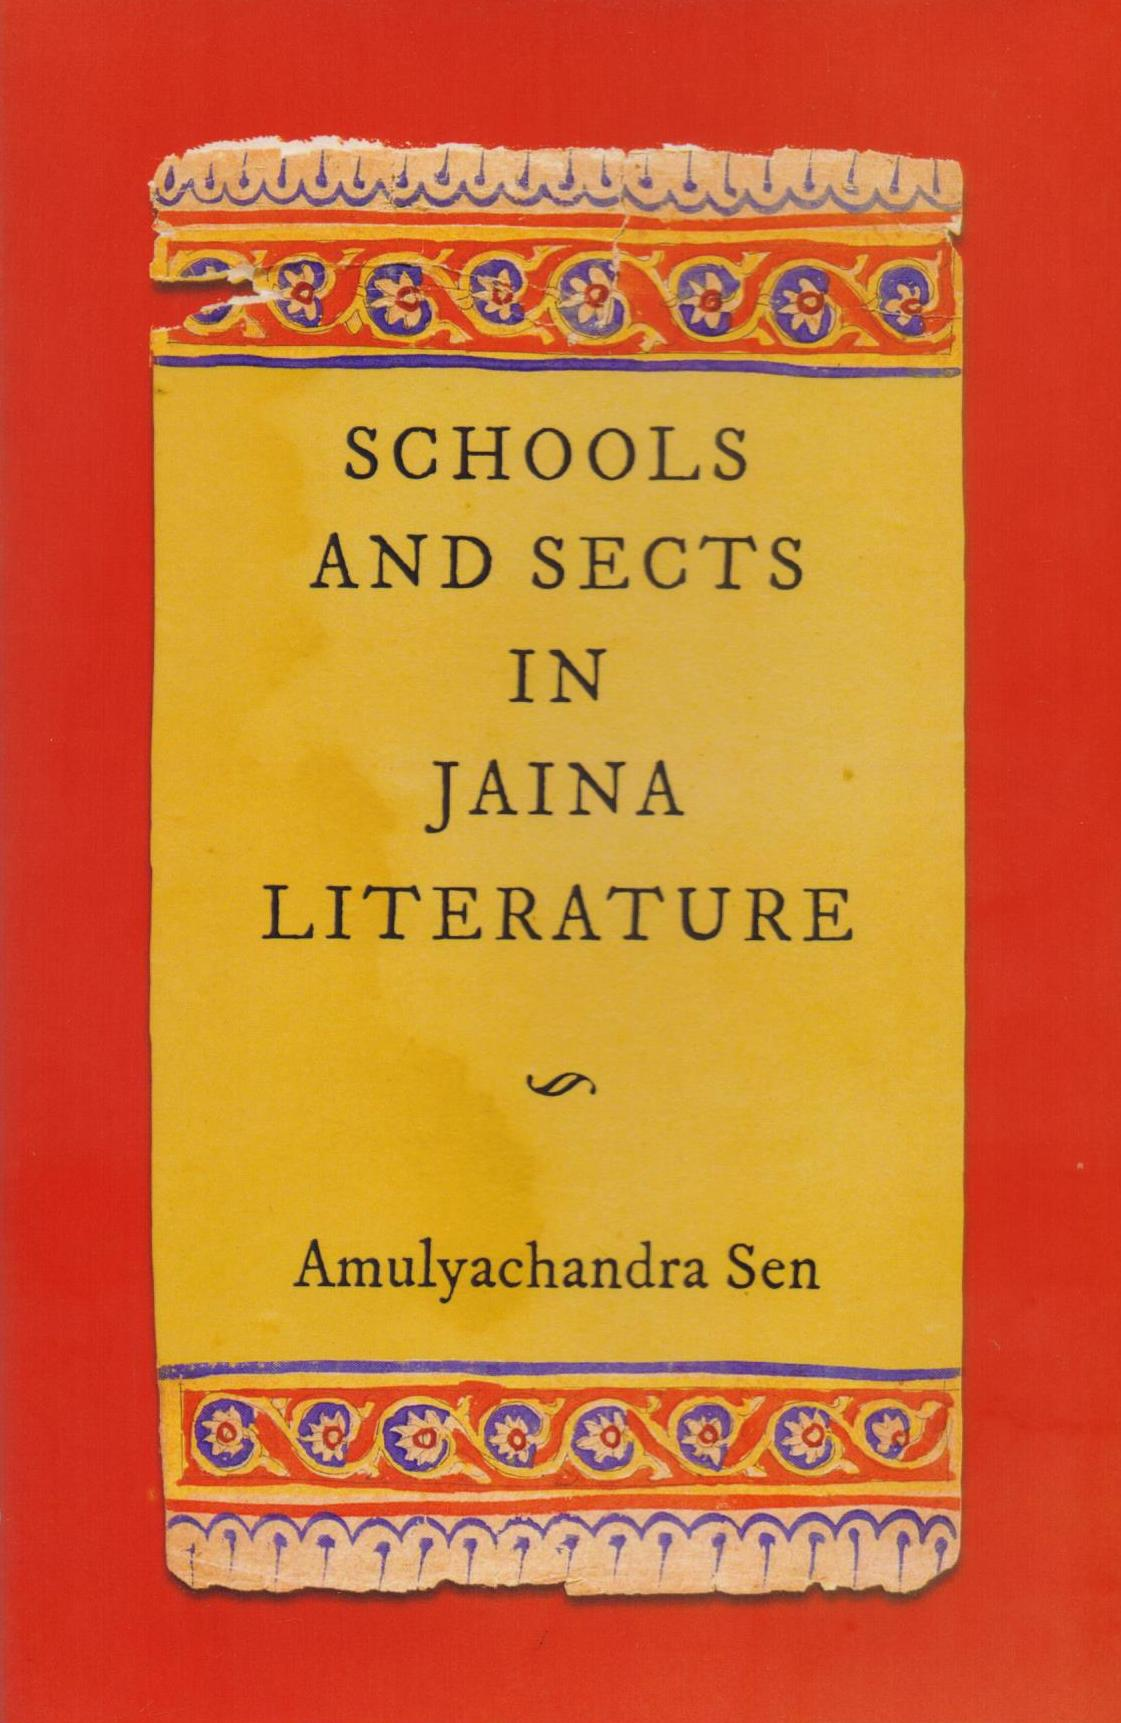 Image for Schools and Sects in Jaina Literature: Being a full Account Compiled from original Sources of the Doctrines and Practices of Philosophical Schools and Religious Sects Mentioned in the Canonical Literature of the Jainas